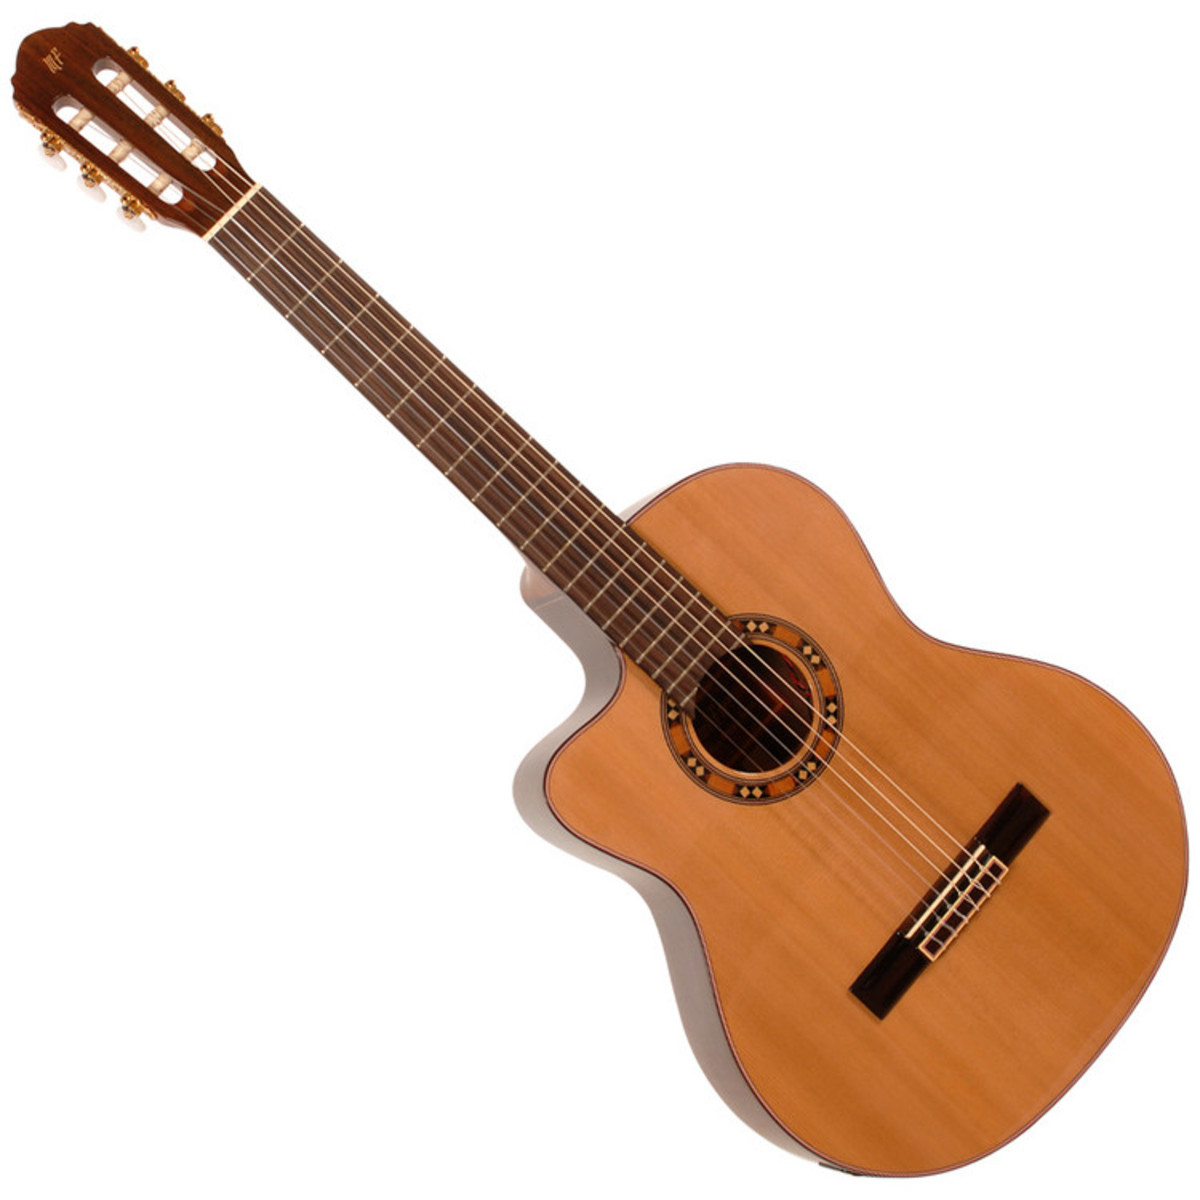 freshman manuel ferrino mfbclh electro classical guitar left handed at gear4music. Black Bedroom Furniture Sets. Home Design Ideas